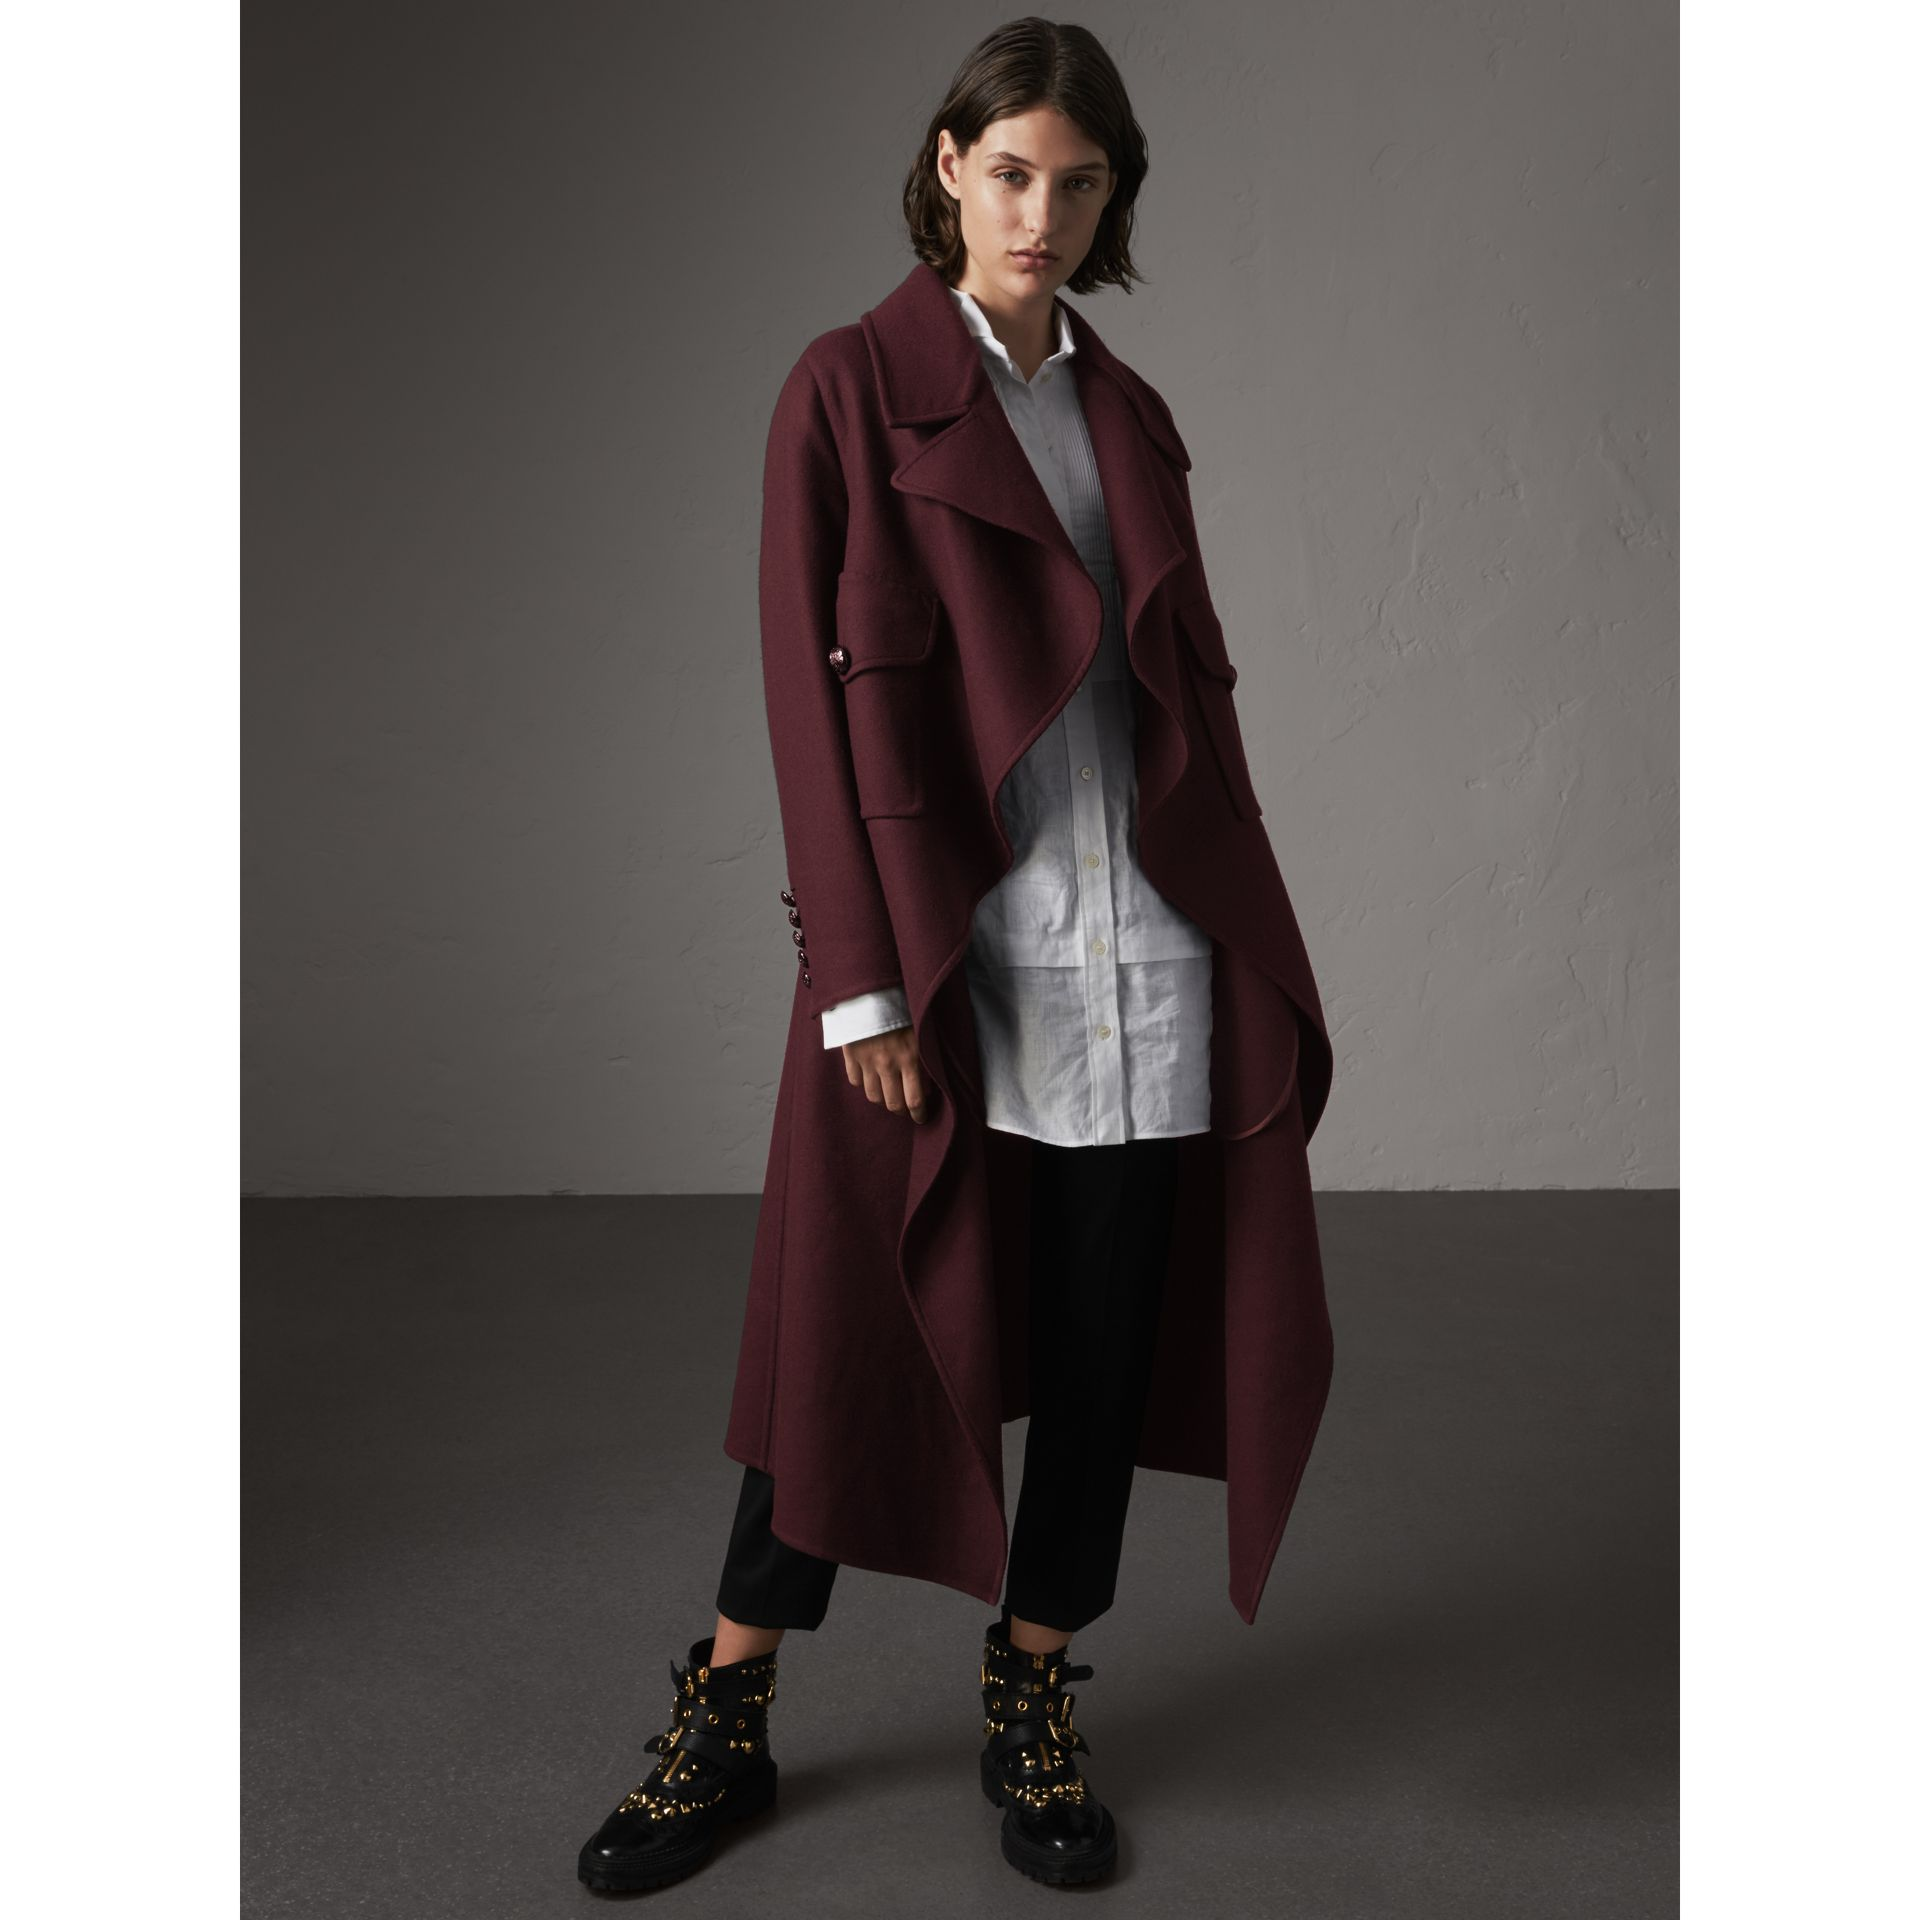 Manteau portefeuille en laine et cachemire double face (Bordeaux Intense) - Femme | Burberry - photo de la galerie 1